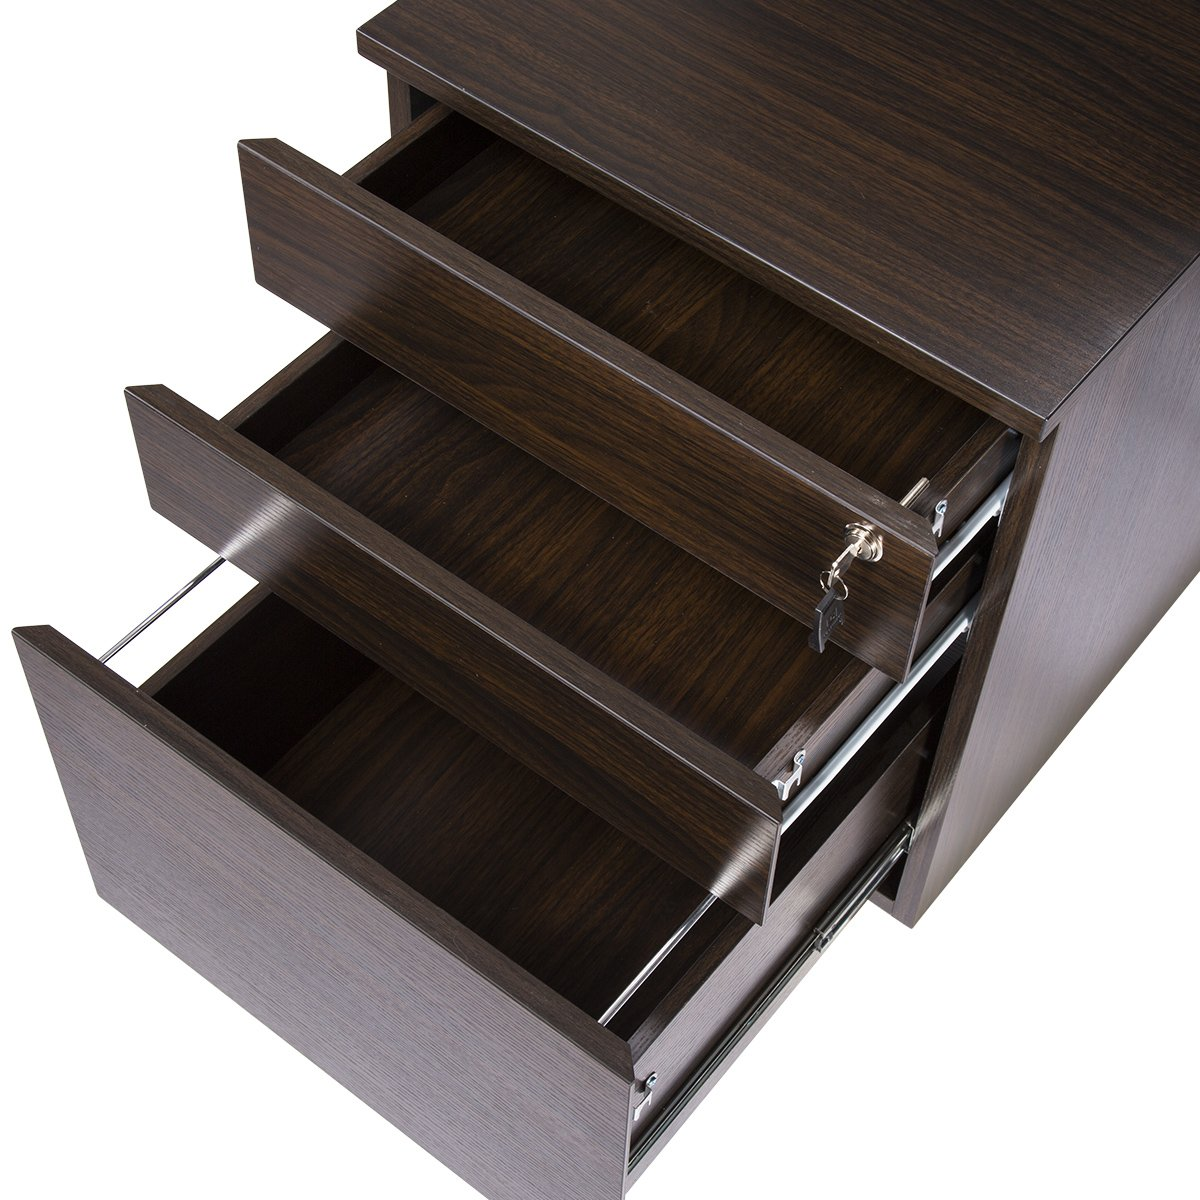 TOPSKY 3 Drawer Wood Mobile File Cabinet Fully Assembled Except Casters (WALNUT) by TOPSKY (Image #3)